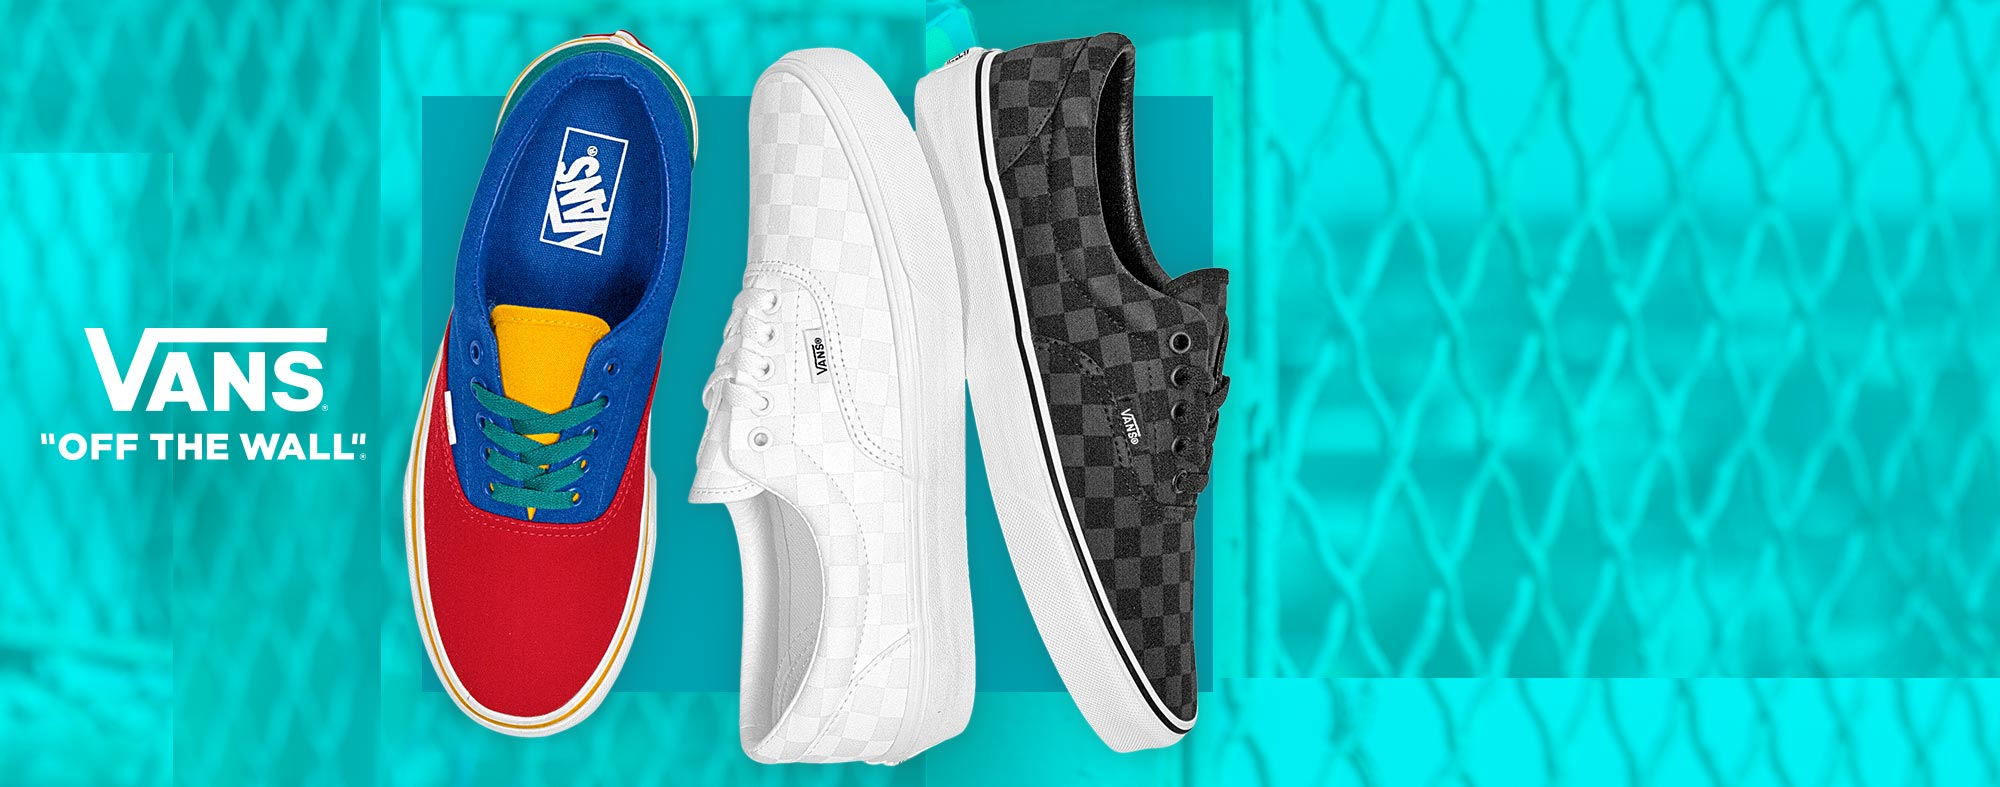 Shop shoes and sneakers from Vans at Journeys